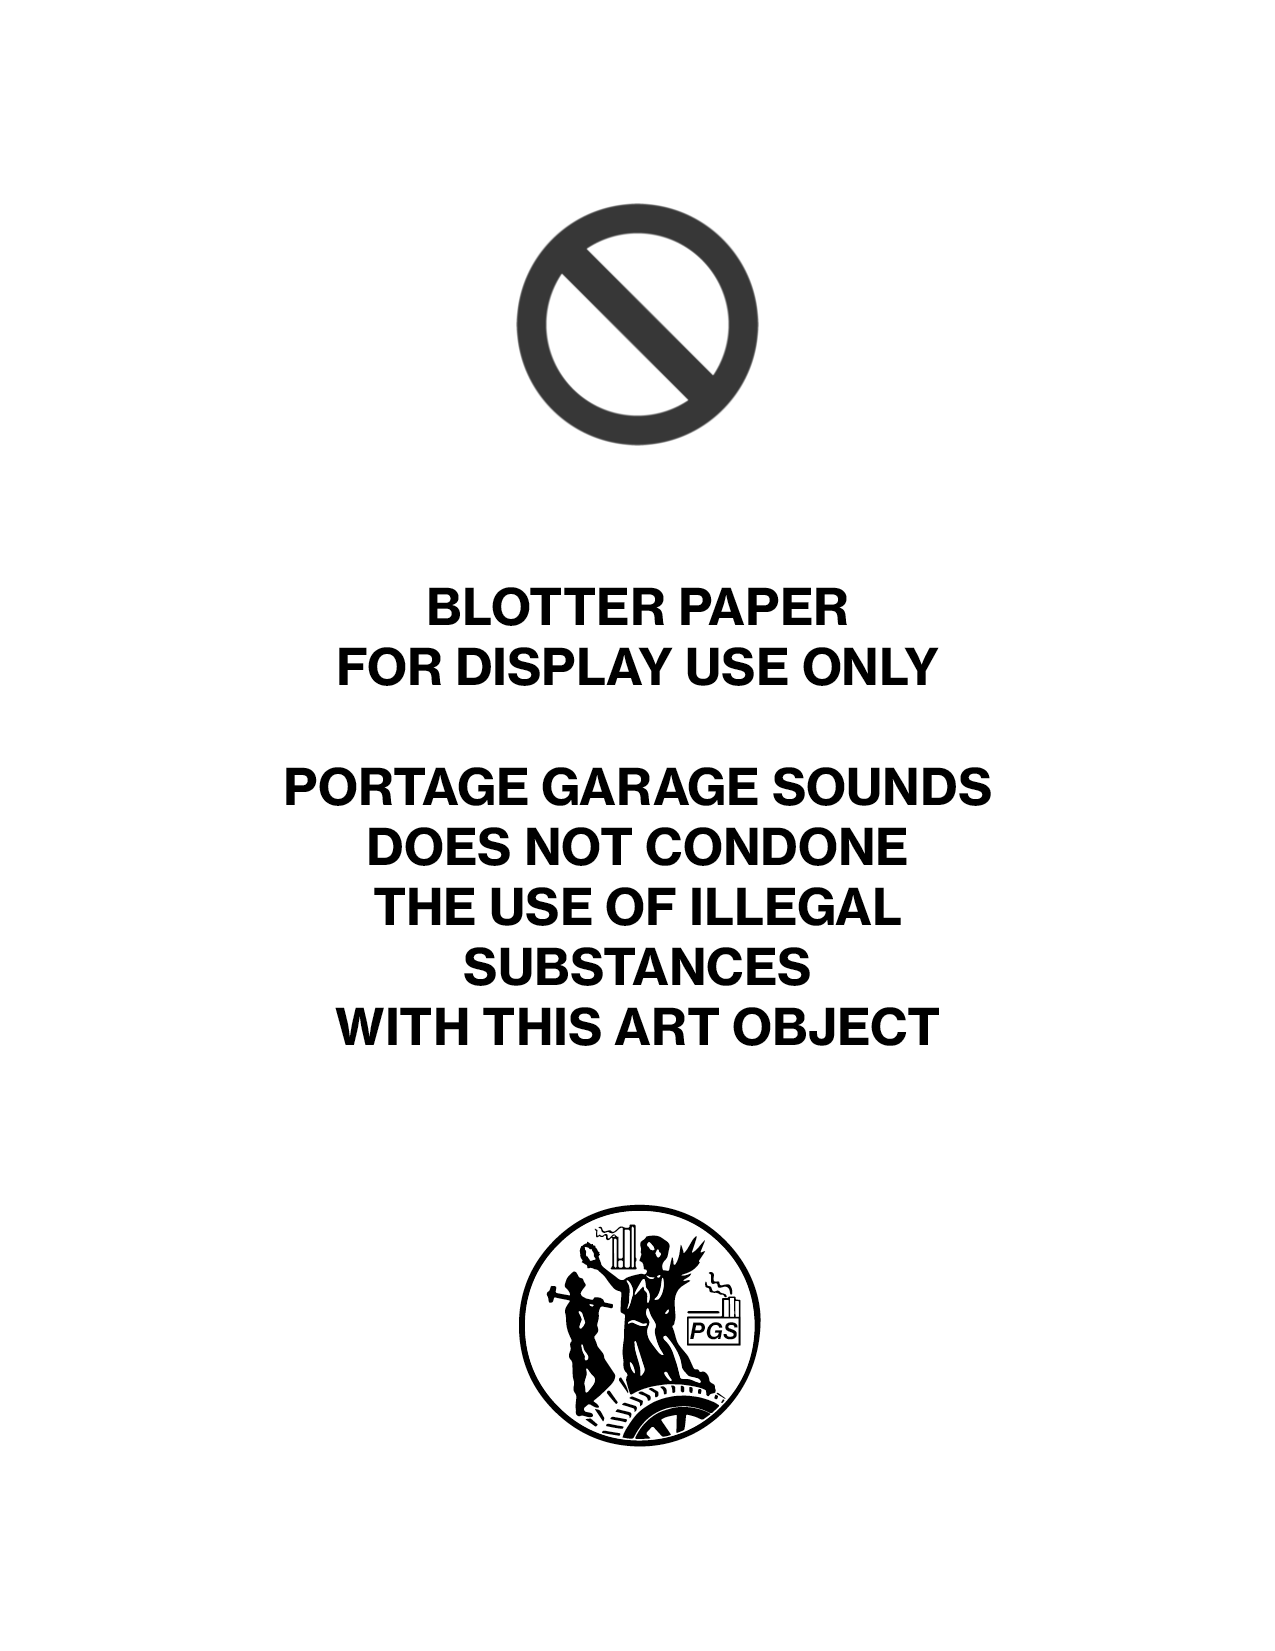 002L blotter warning, at size.png